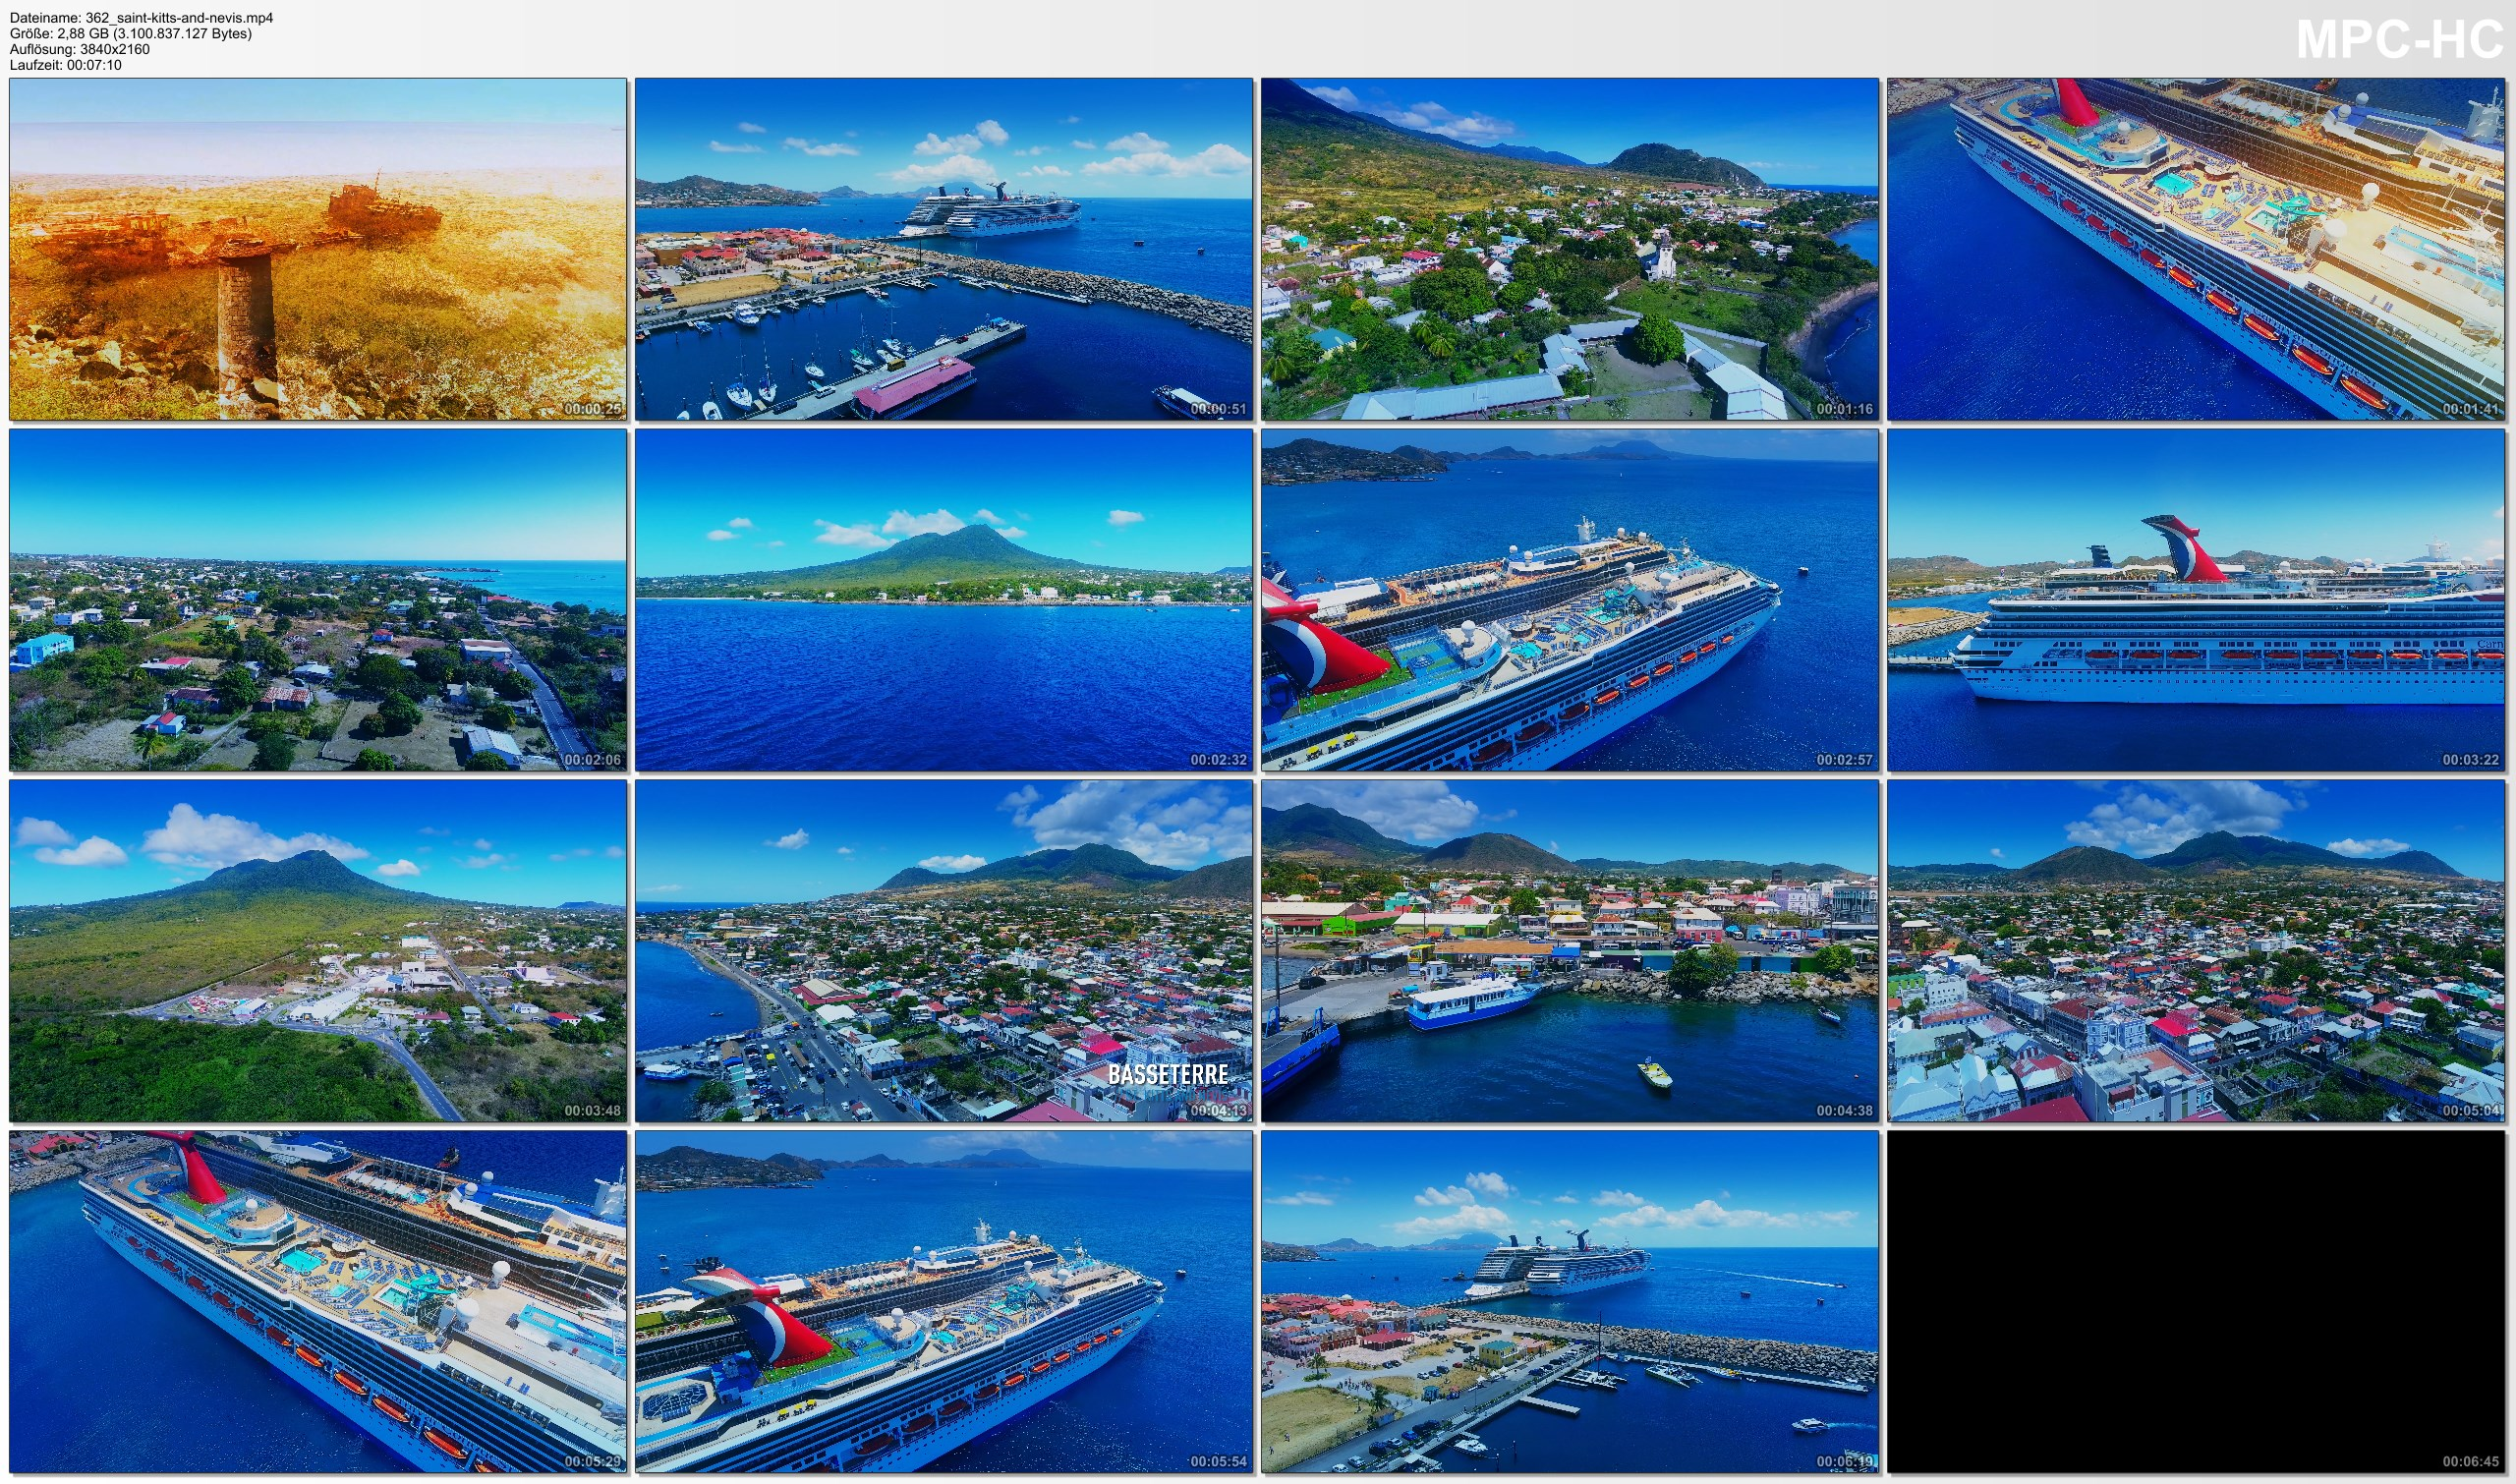 Drone Pictures from Video 【4K】Drone Footage | The Beauty of Saint Kitts and Nevis in 8 Minutes 2019 | Cinematic Aerial Caribe